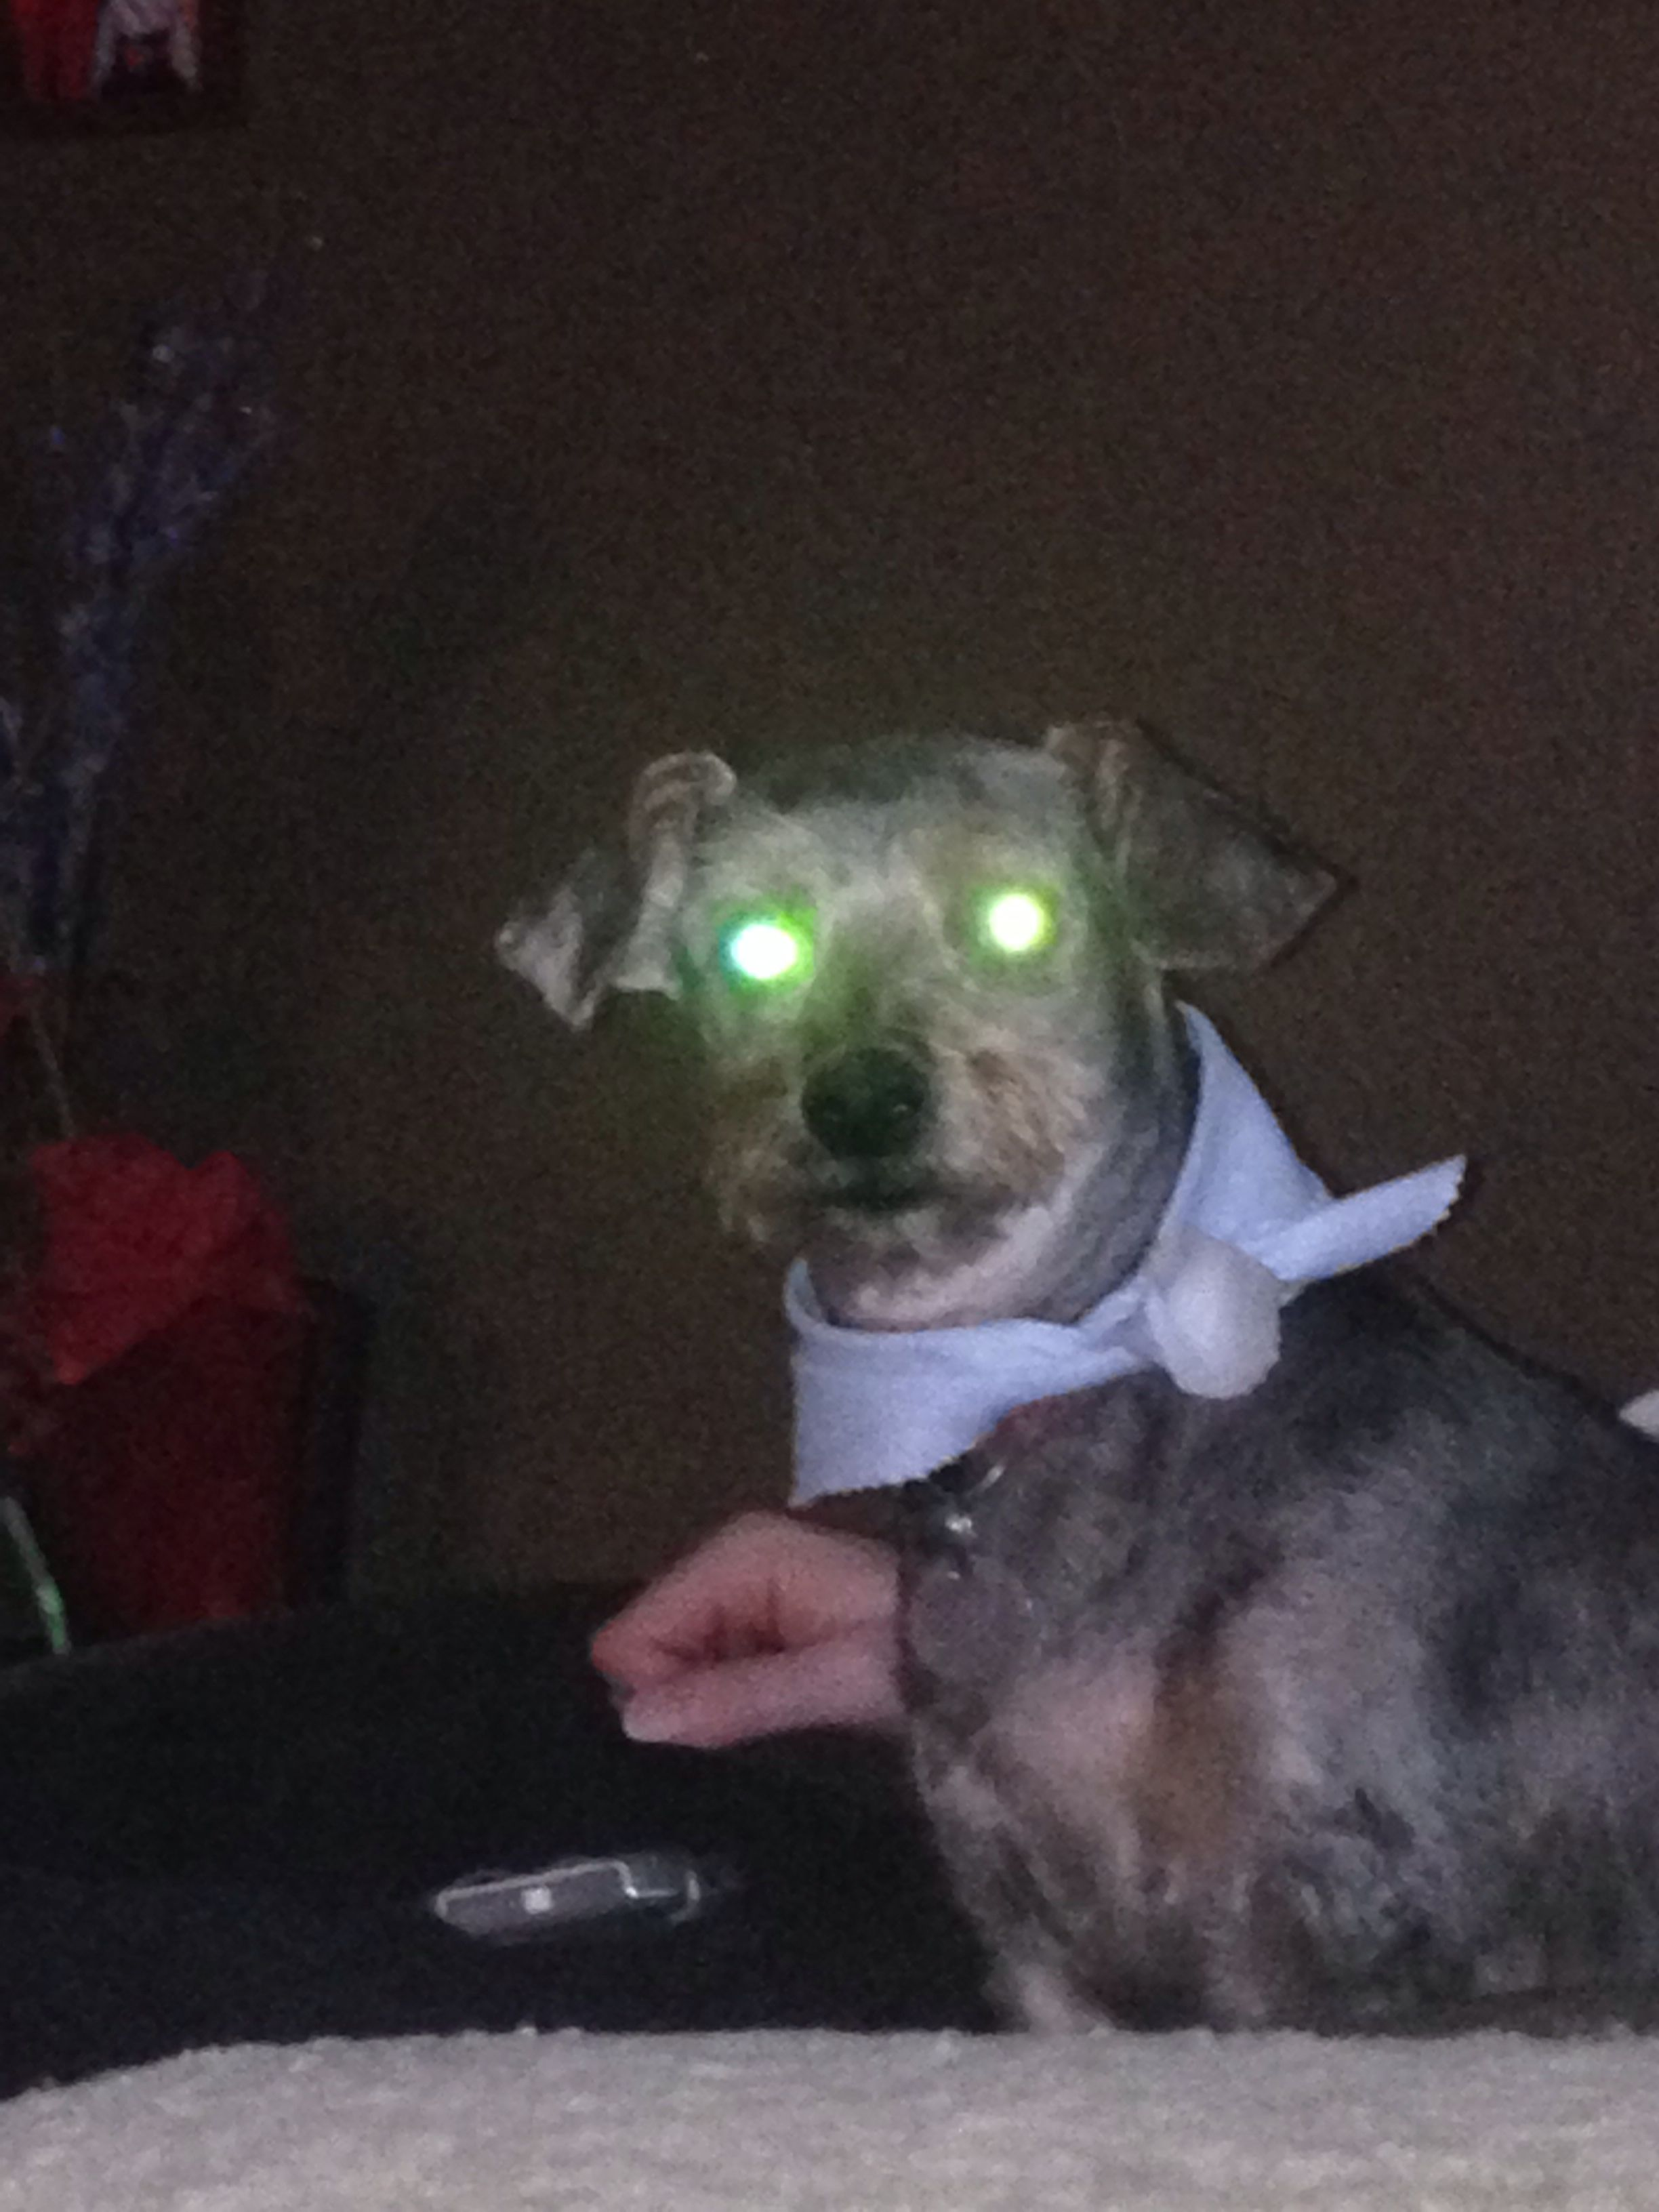 My dog has been possessed by aliens? #Yorkiepoo #dogs